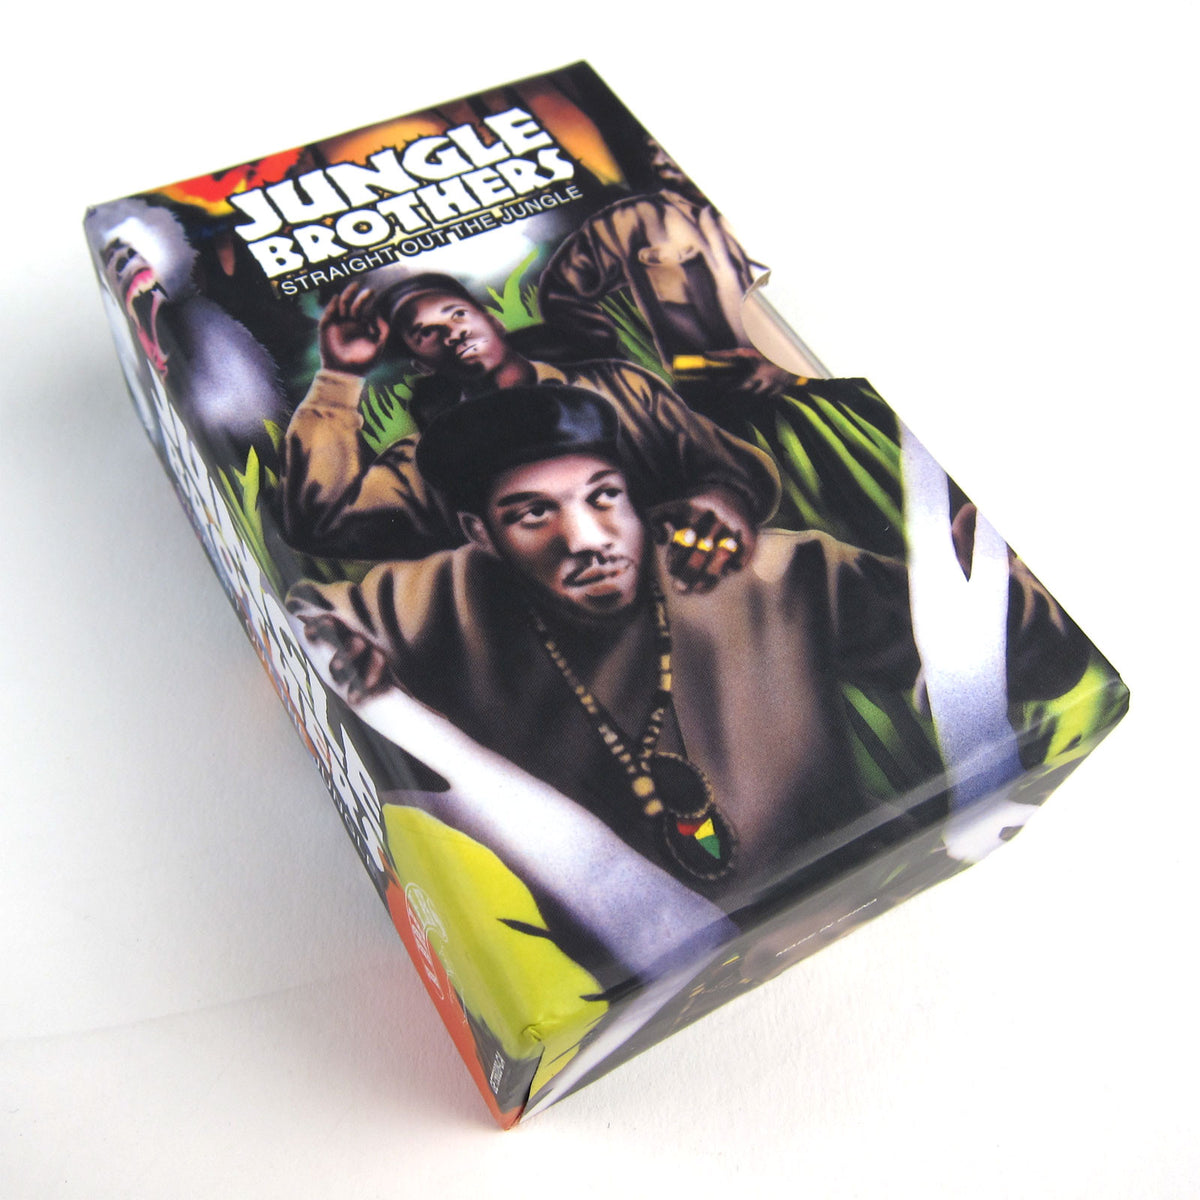 Jungle Brothers: Straight Out The Jungle Deluxe Cassette Boxset